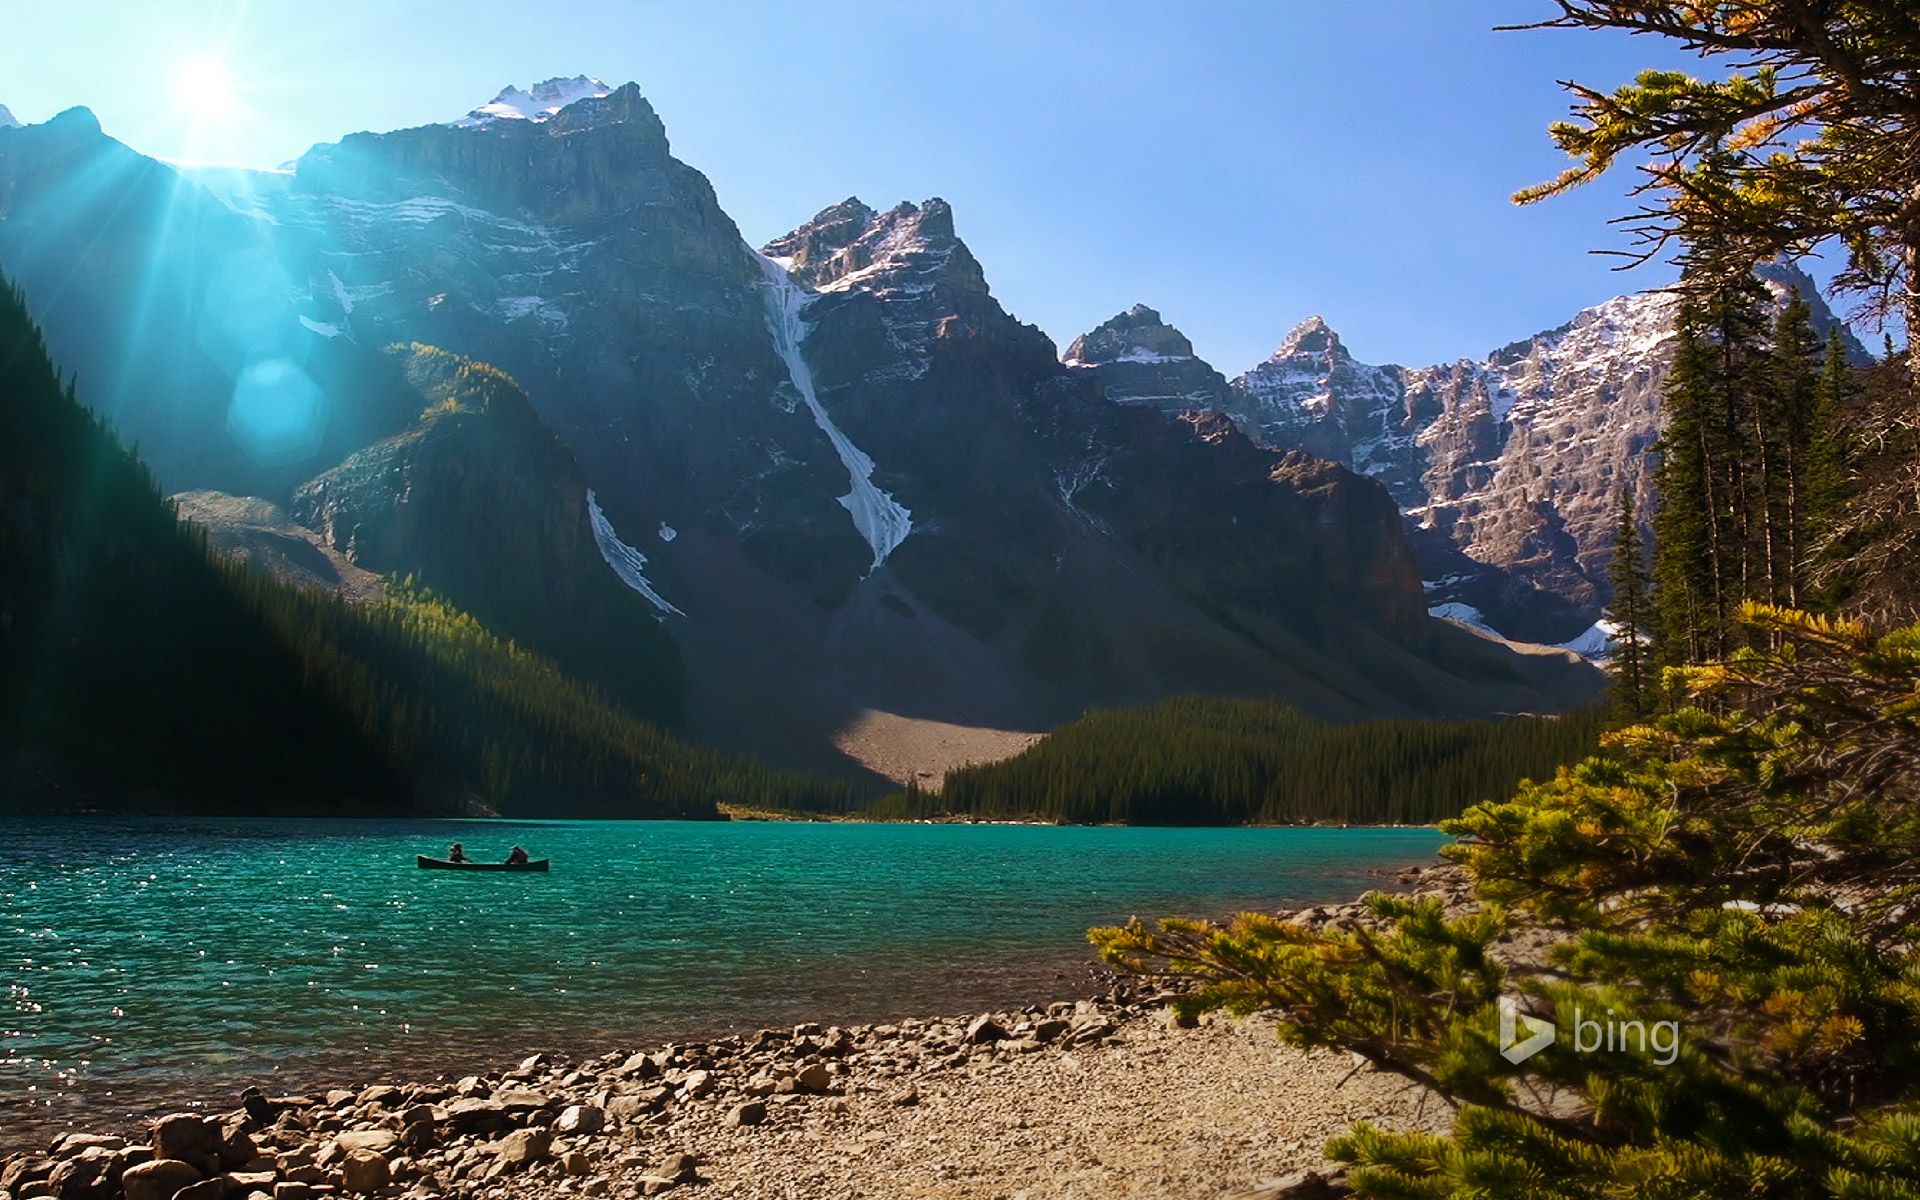 Canoe on Moraine Lake in Banff National Park, Alberta, Canada